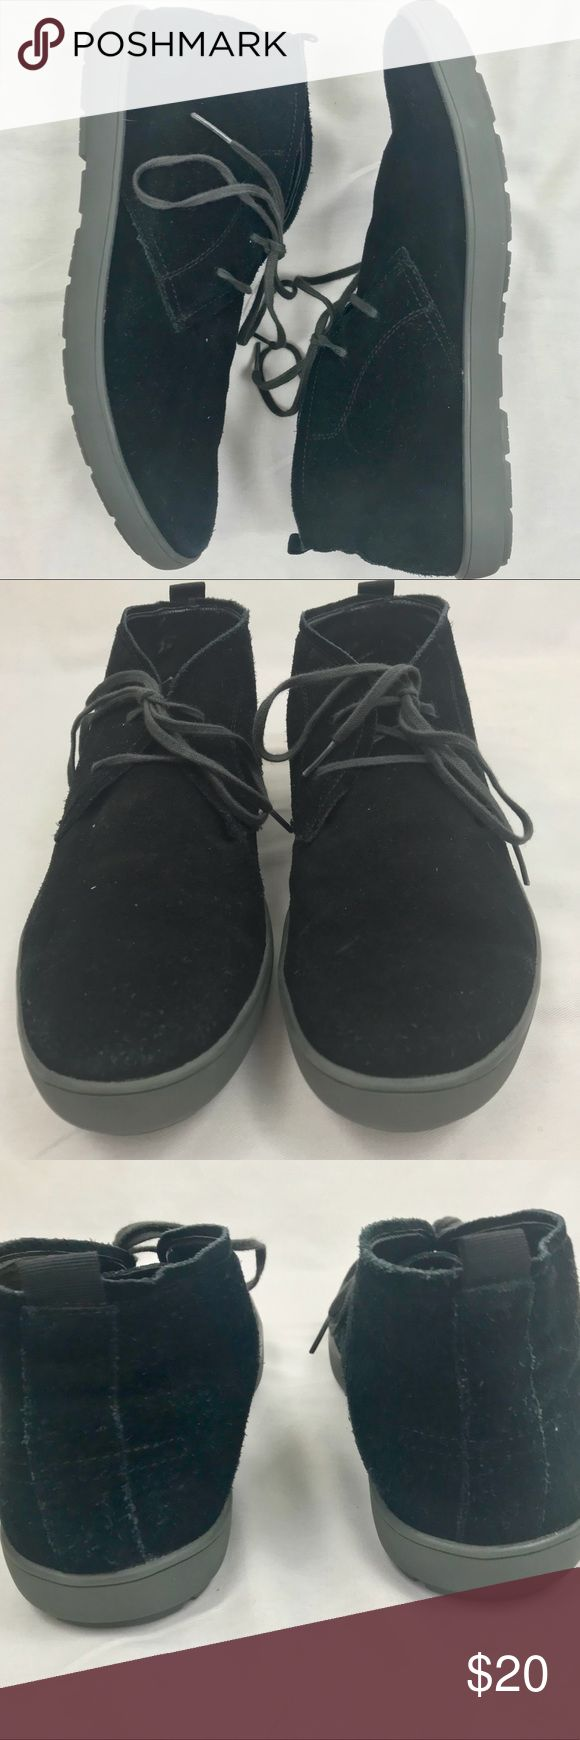 Calvin Klein Men's Nowles Suede Chukka Boots EUC Men's Nowles black suede chukka boots size 10 in excellent, gently used condition 2 eyelets Comfortable and stylish My son wore these once and then they sat in his closet! Excellent, like new condition Calvin Klein Shoes Chukka Boots